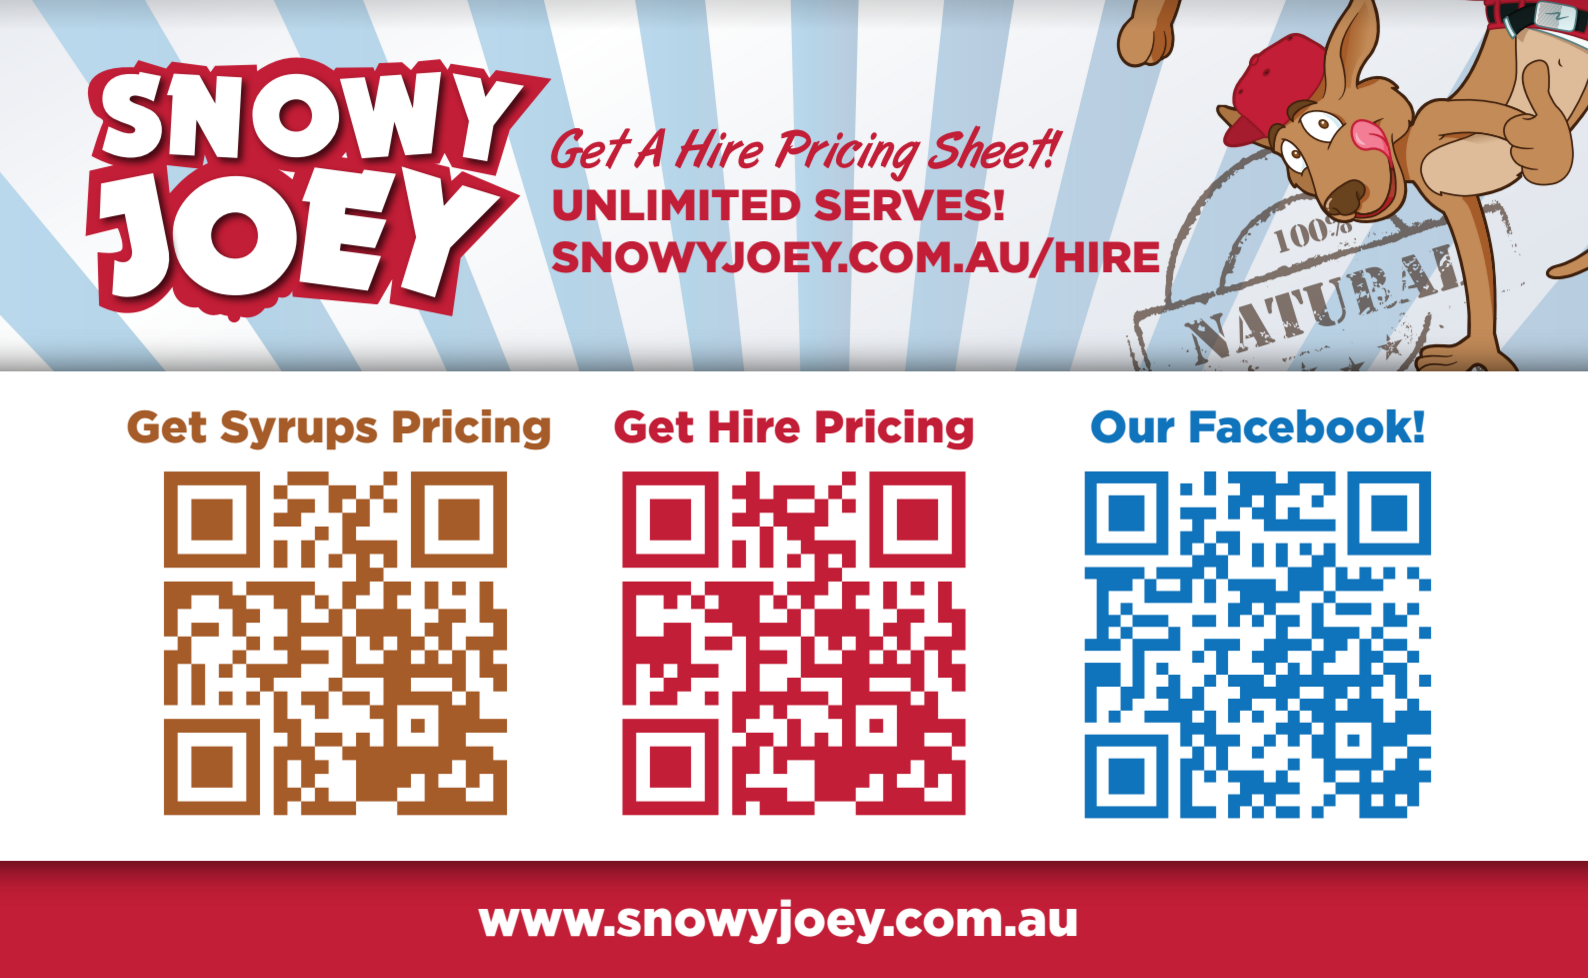 Screenshot showing a Snowy Joey flyer with QR codes to different links